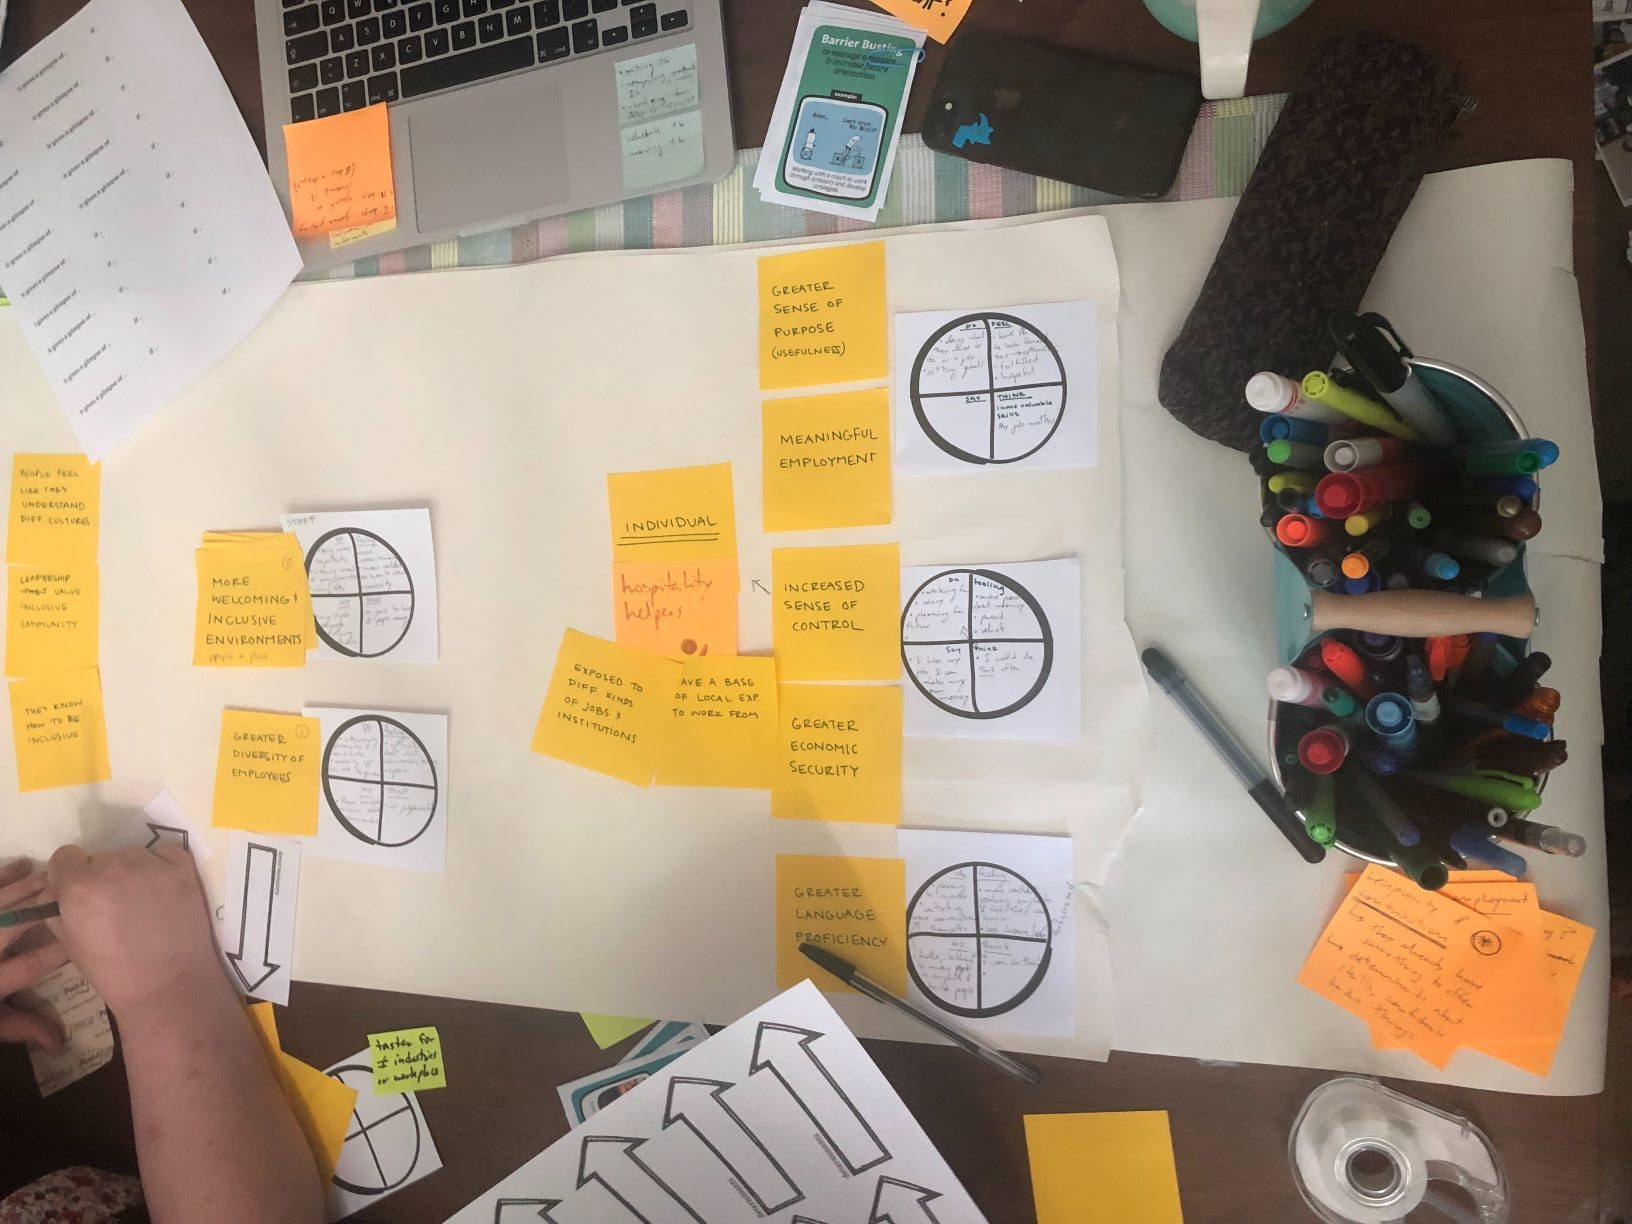 A large sheet of paper with yellow post-its that state desired outcomes beside circles broken into quadrants where each outcome is broken down into what people are thinking, saying, feeling, and doing when living out that outcome.